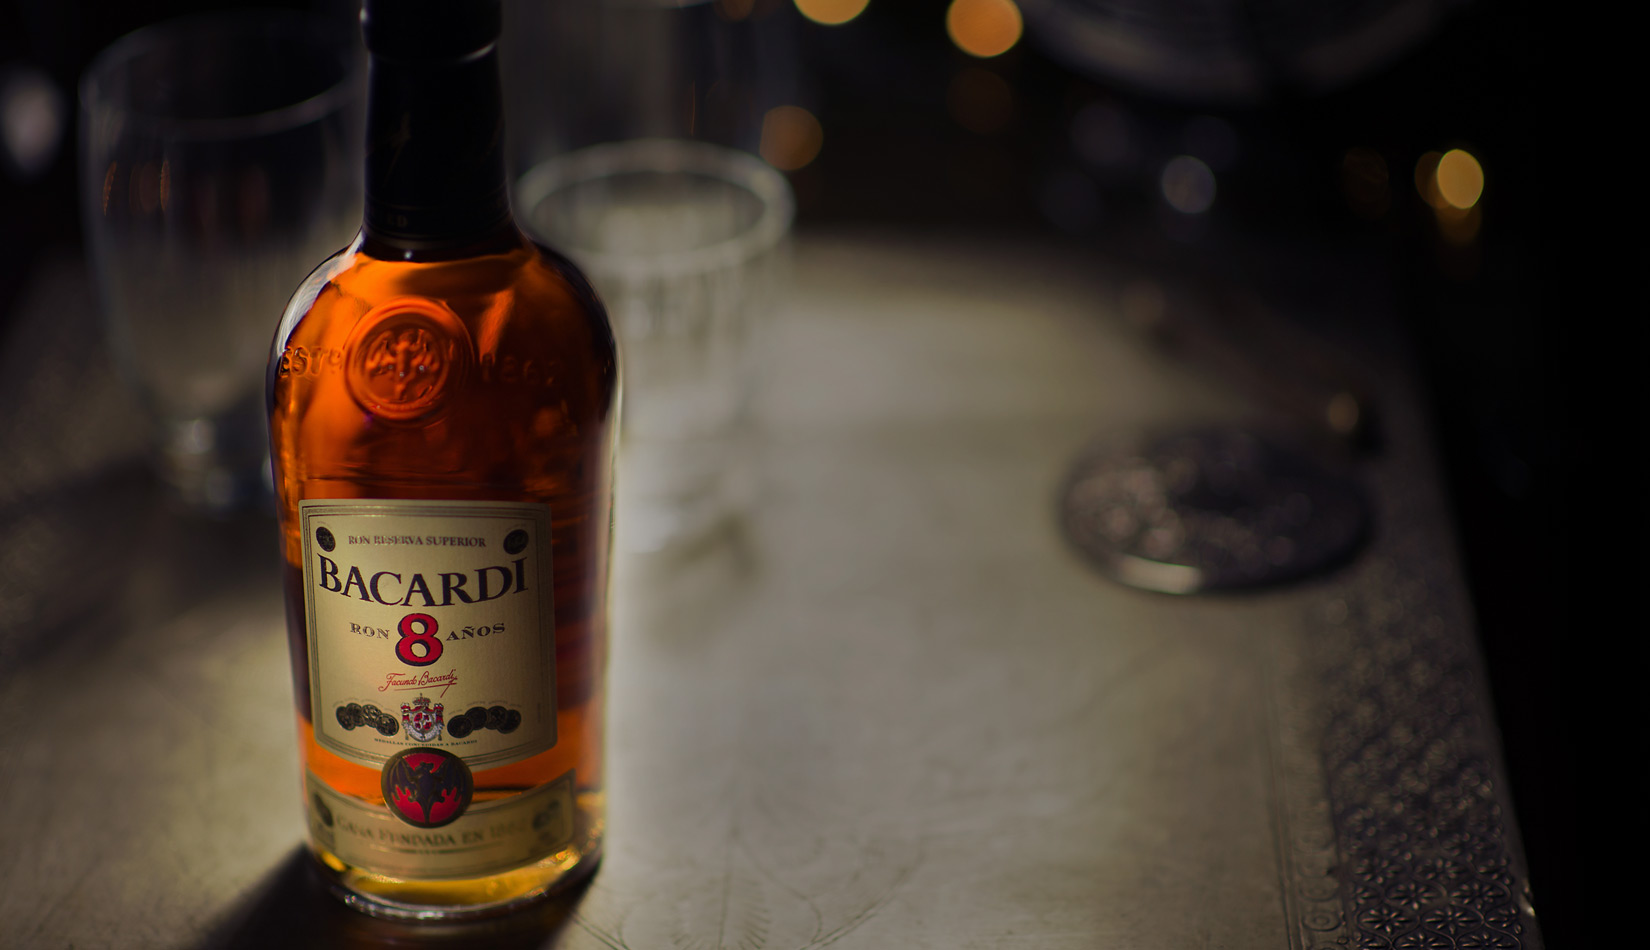 Amazing Bacardi Pictures & Backgrounds